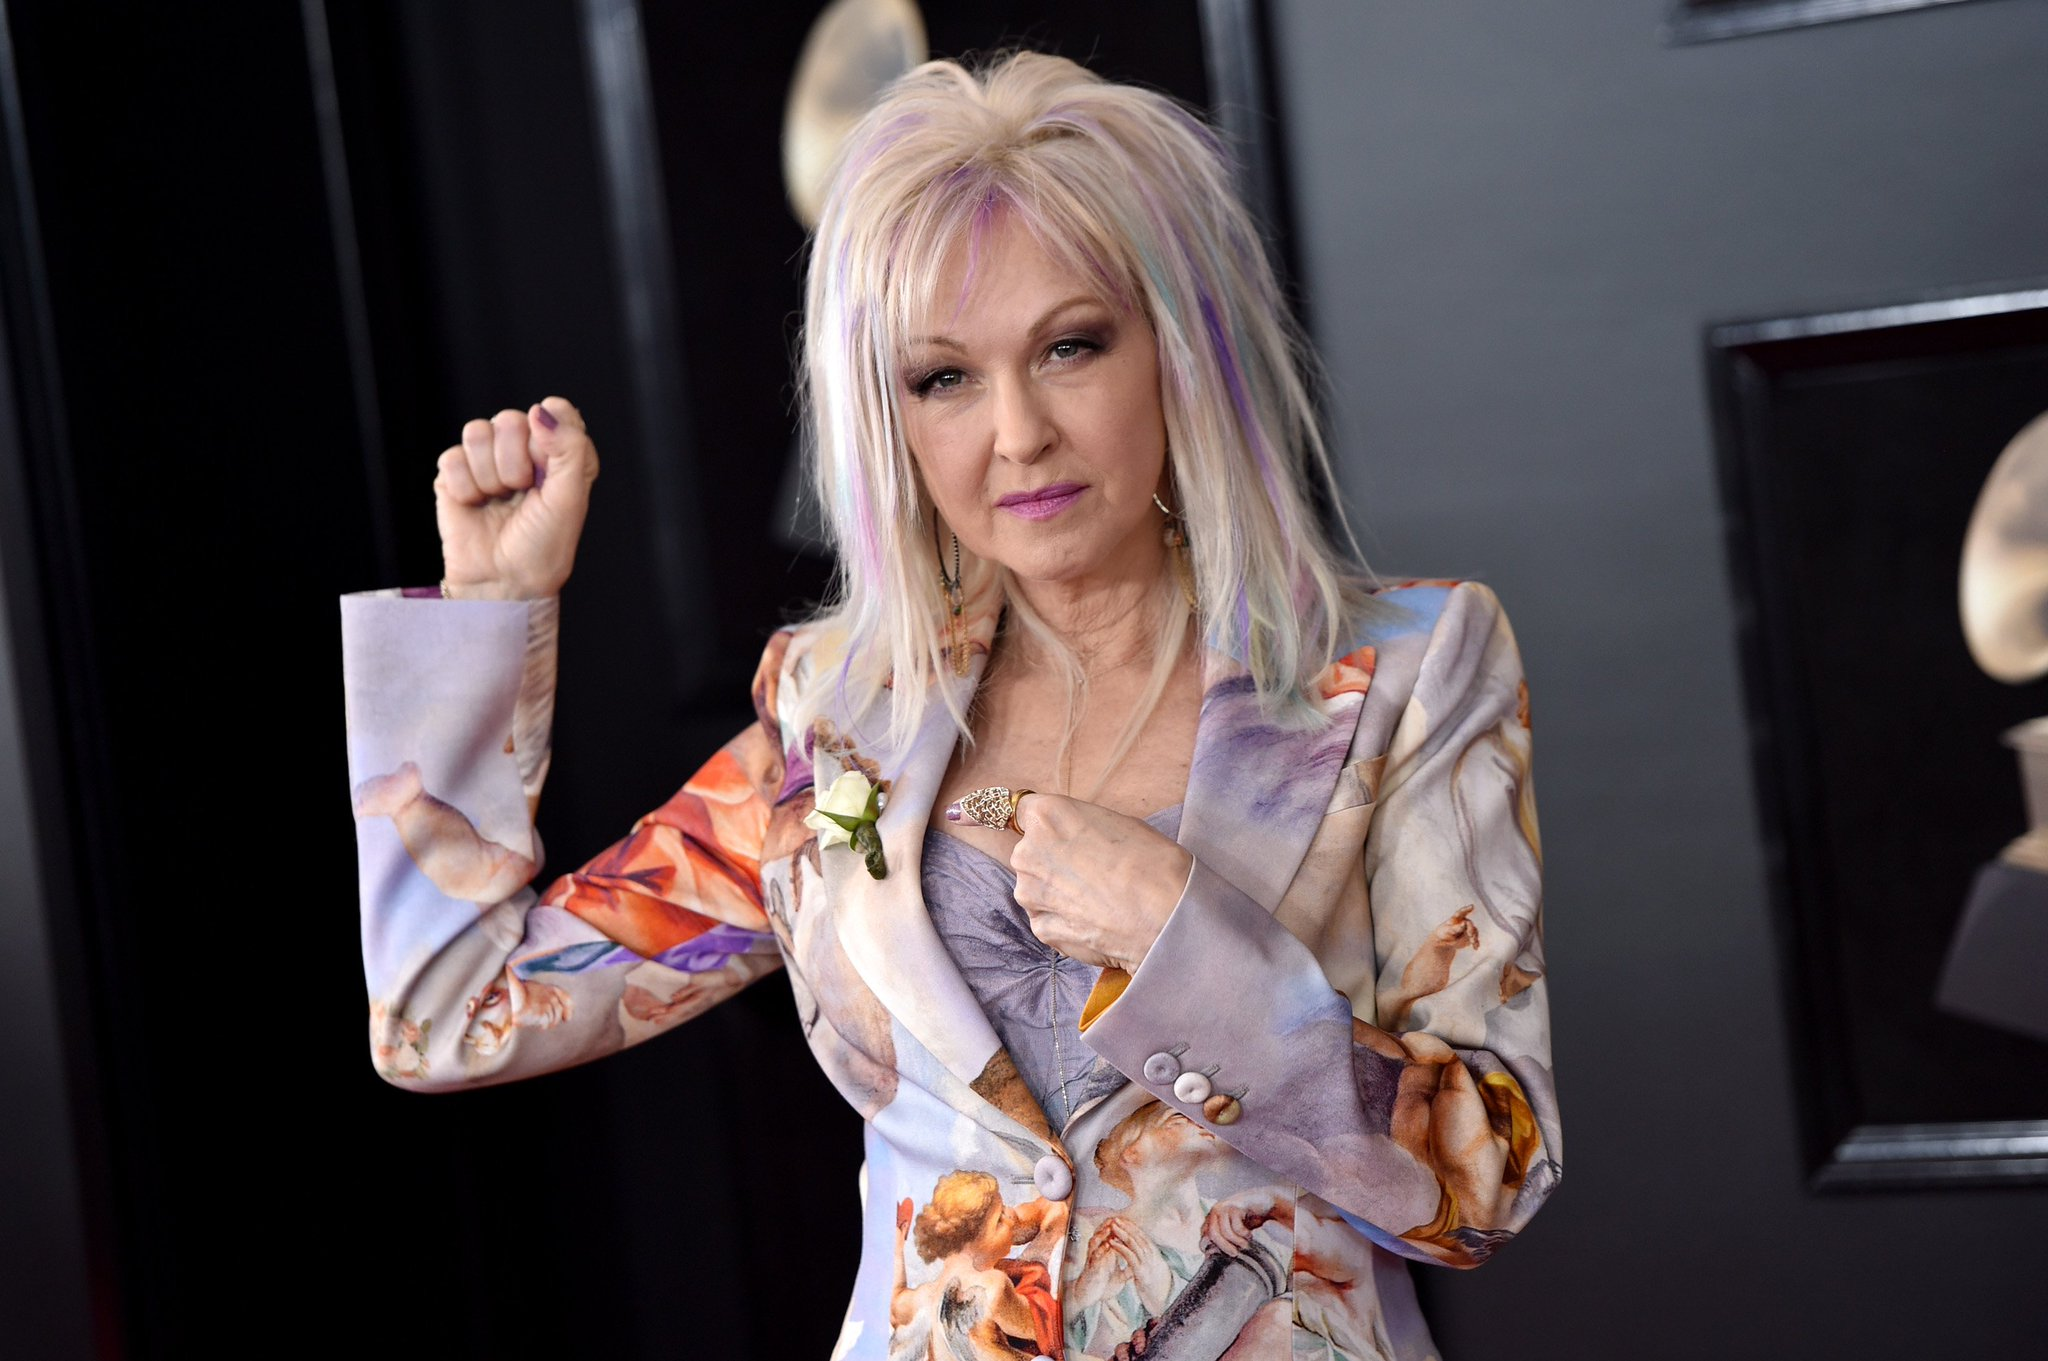 """""""Women make up 51% of the work force, and it's about time we get paid equal."""" #CyndiLauper on #TimesUp #GRAMMYs https://t.co/8A0HJd4lu2"""